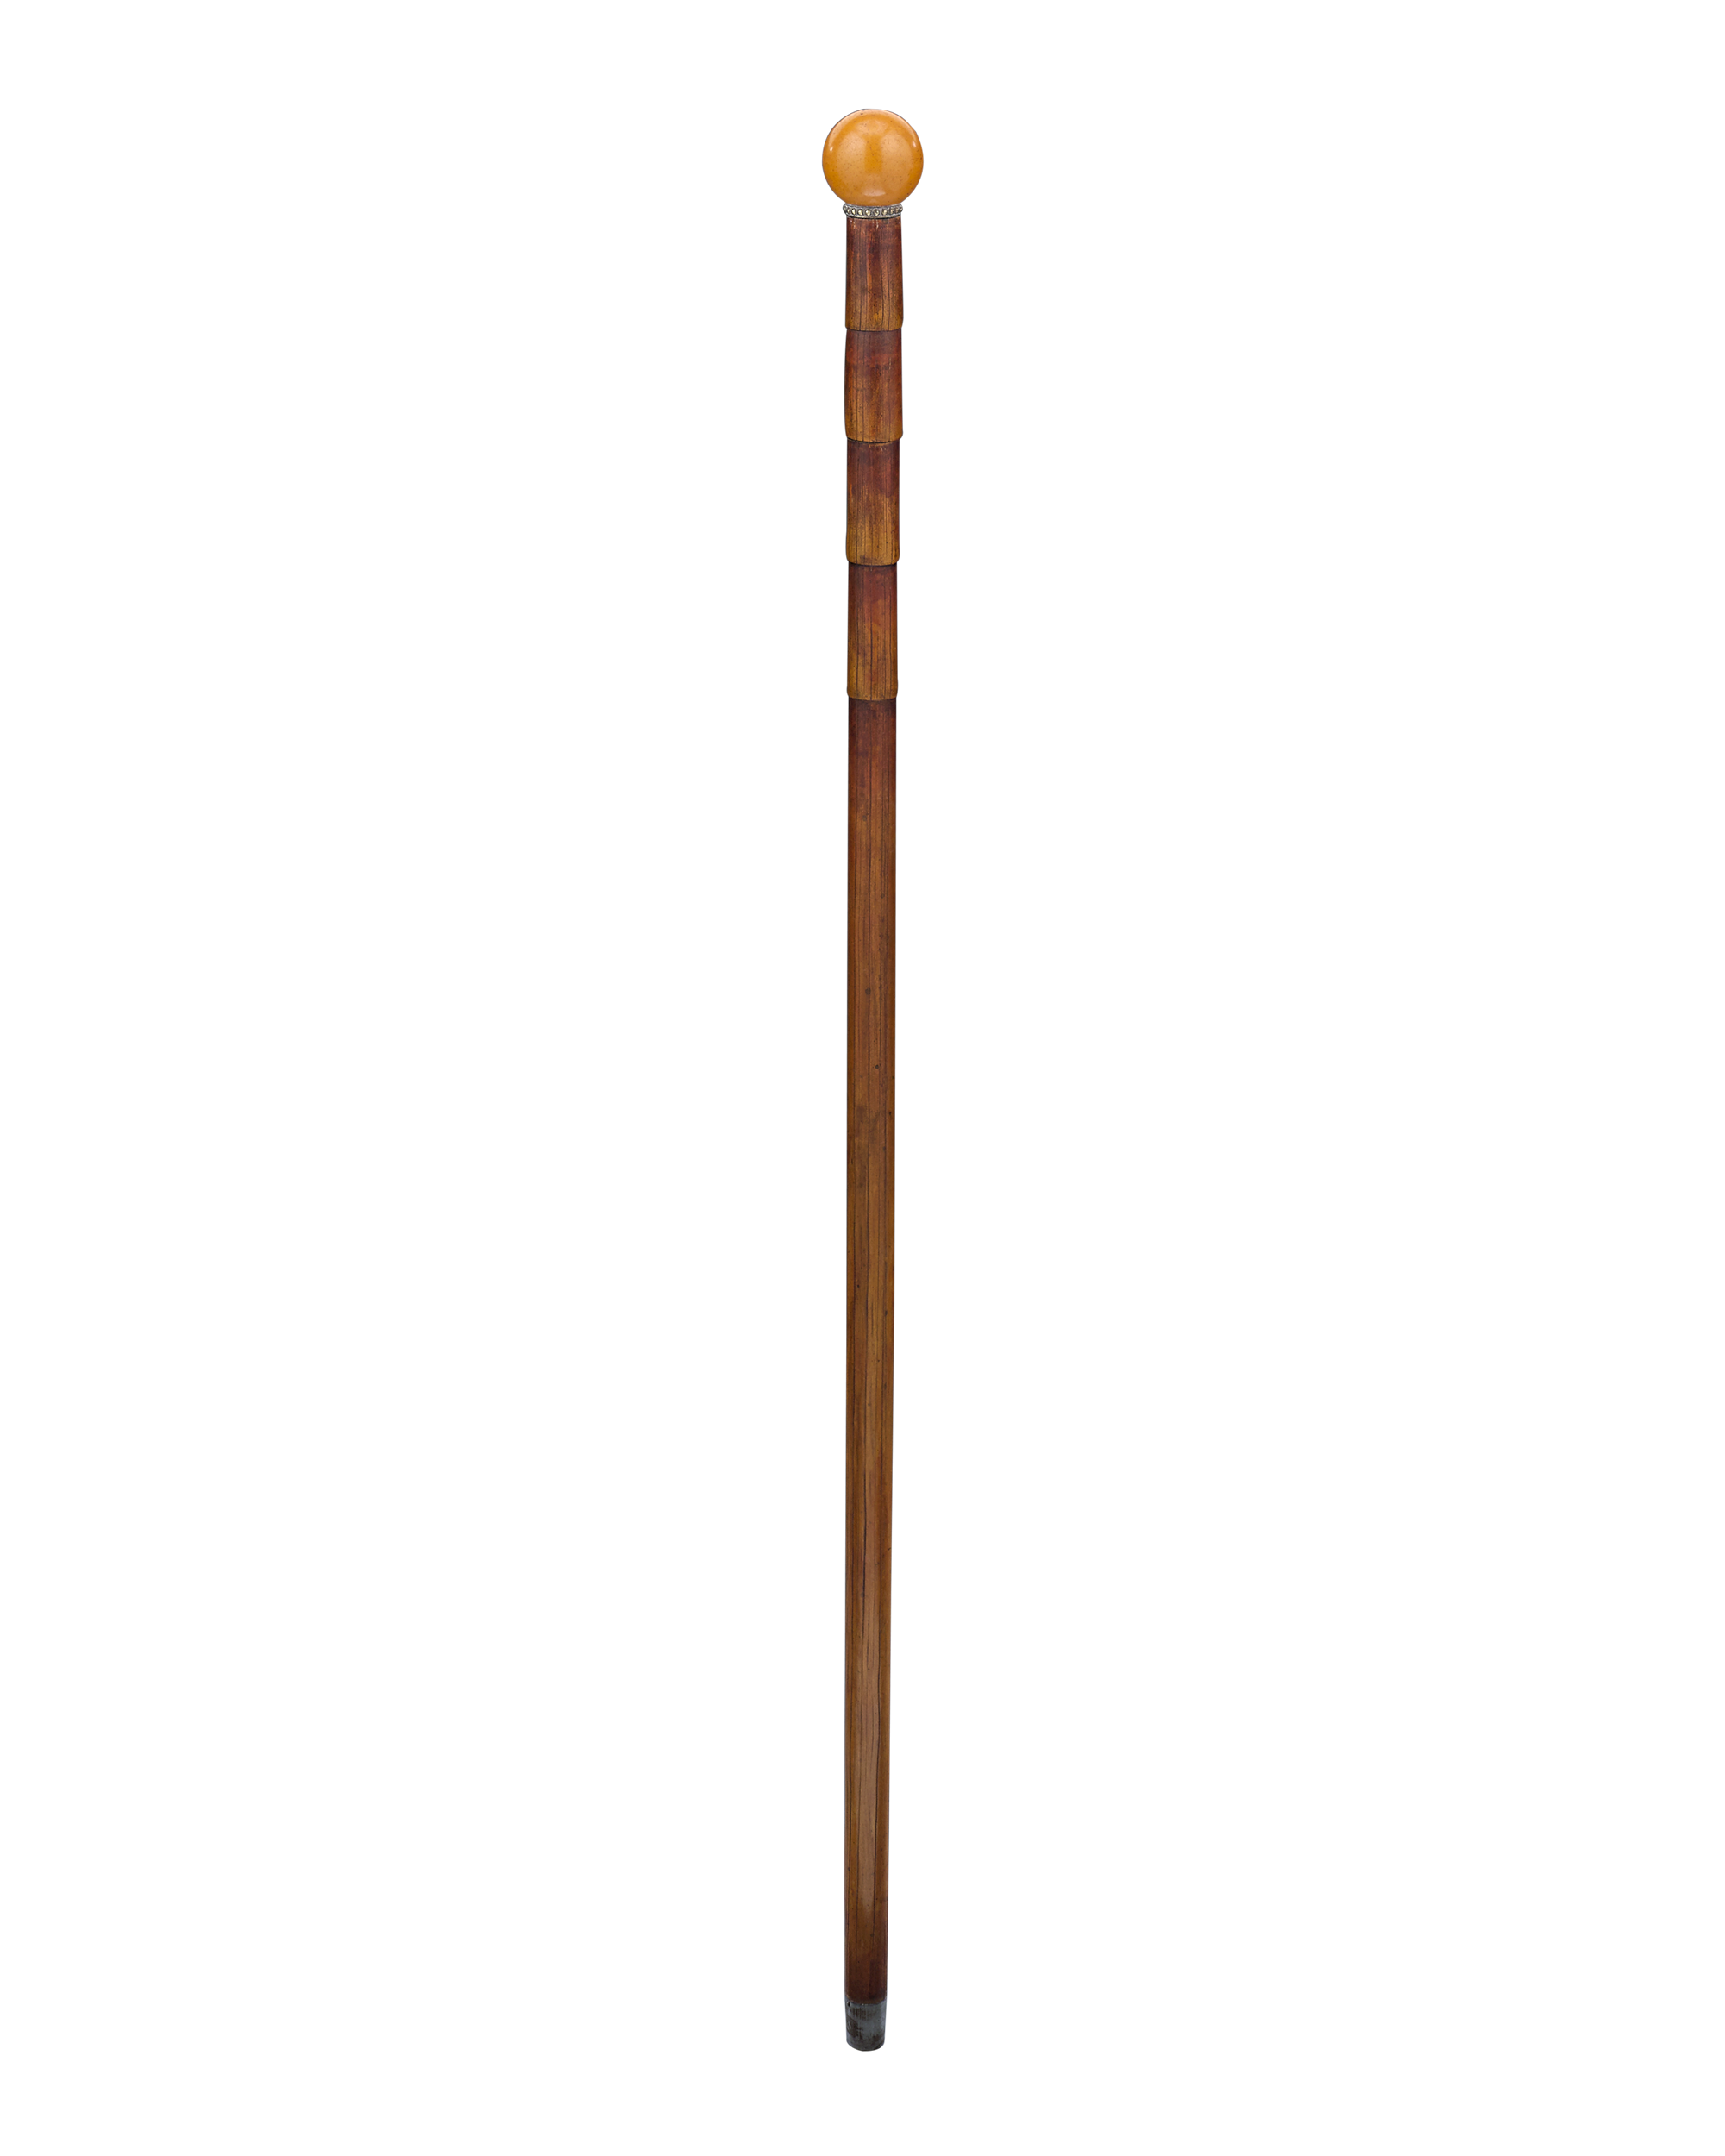 Cane transparent bamboo. Games walking sticks since